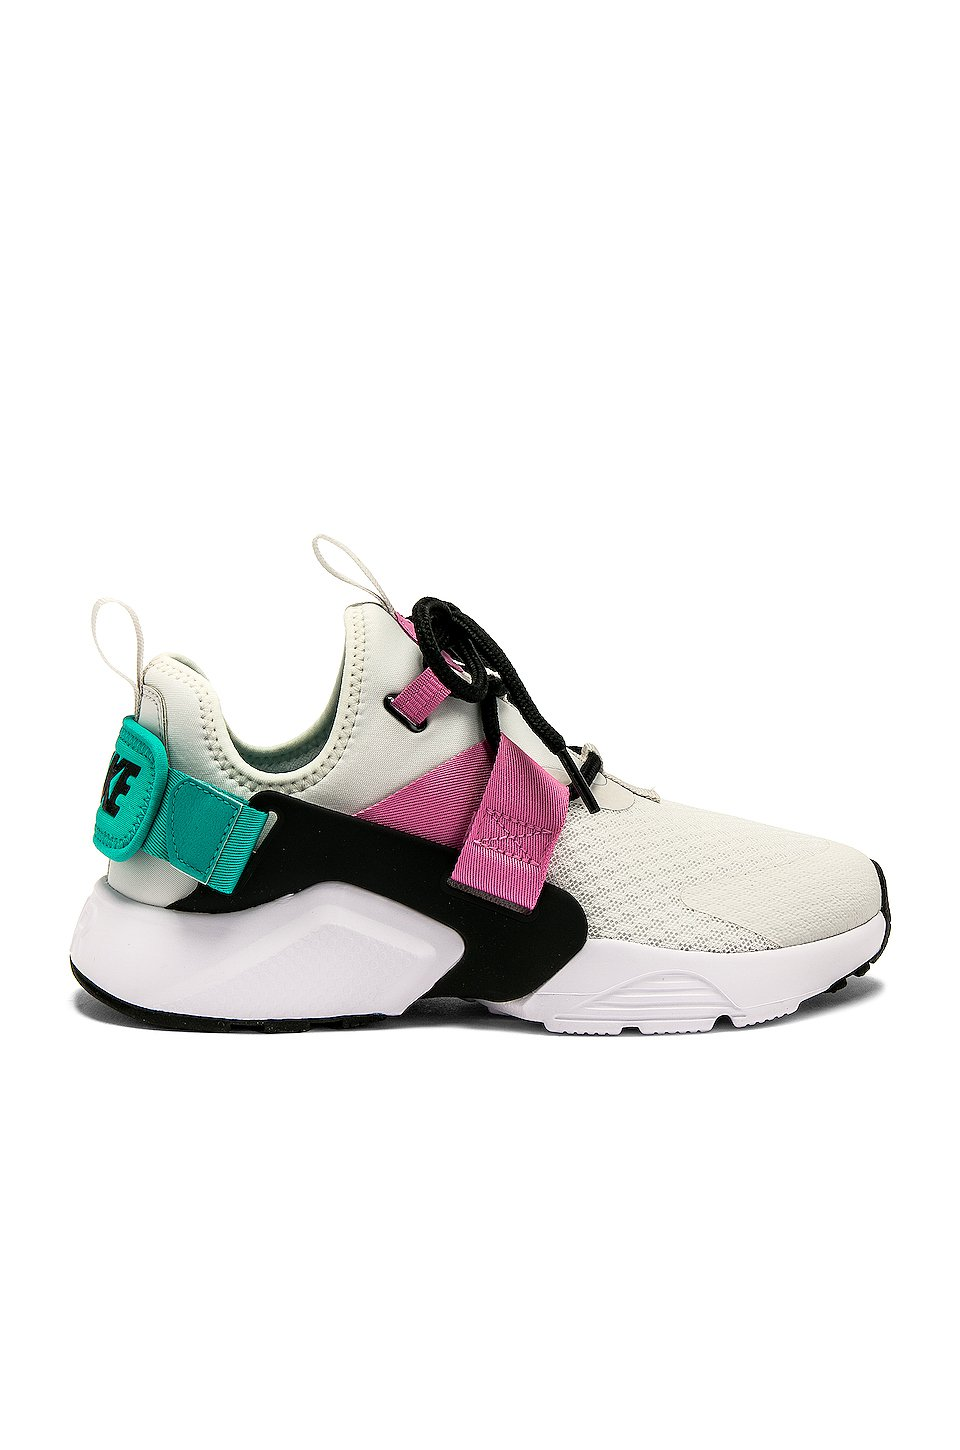 Women's Air Huarache City Low Sneaker